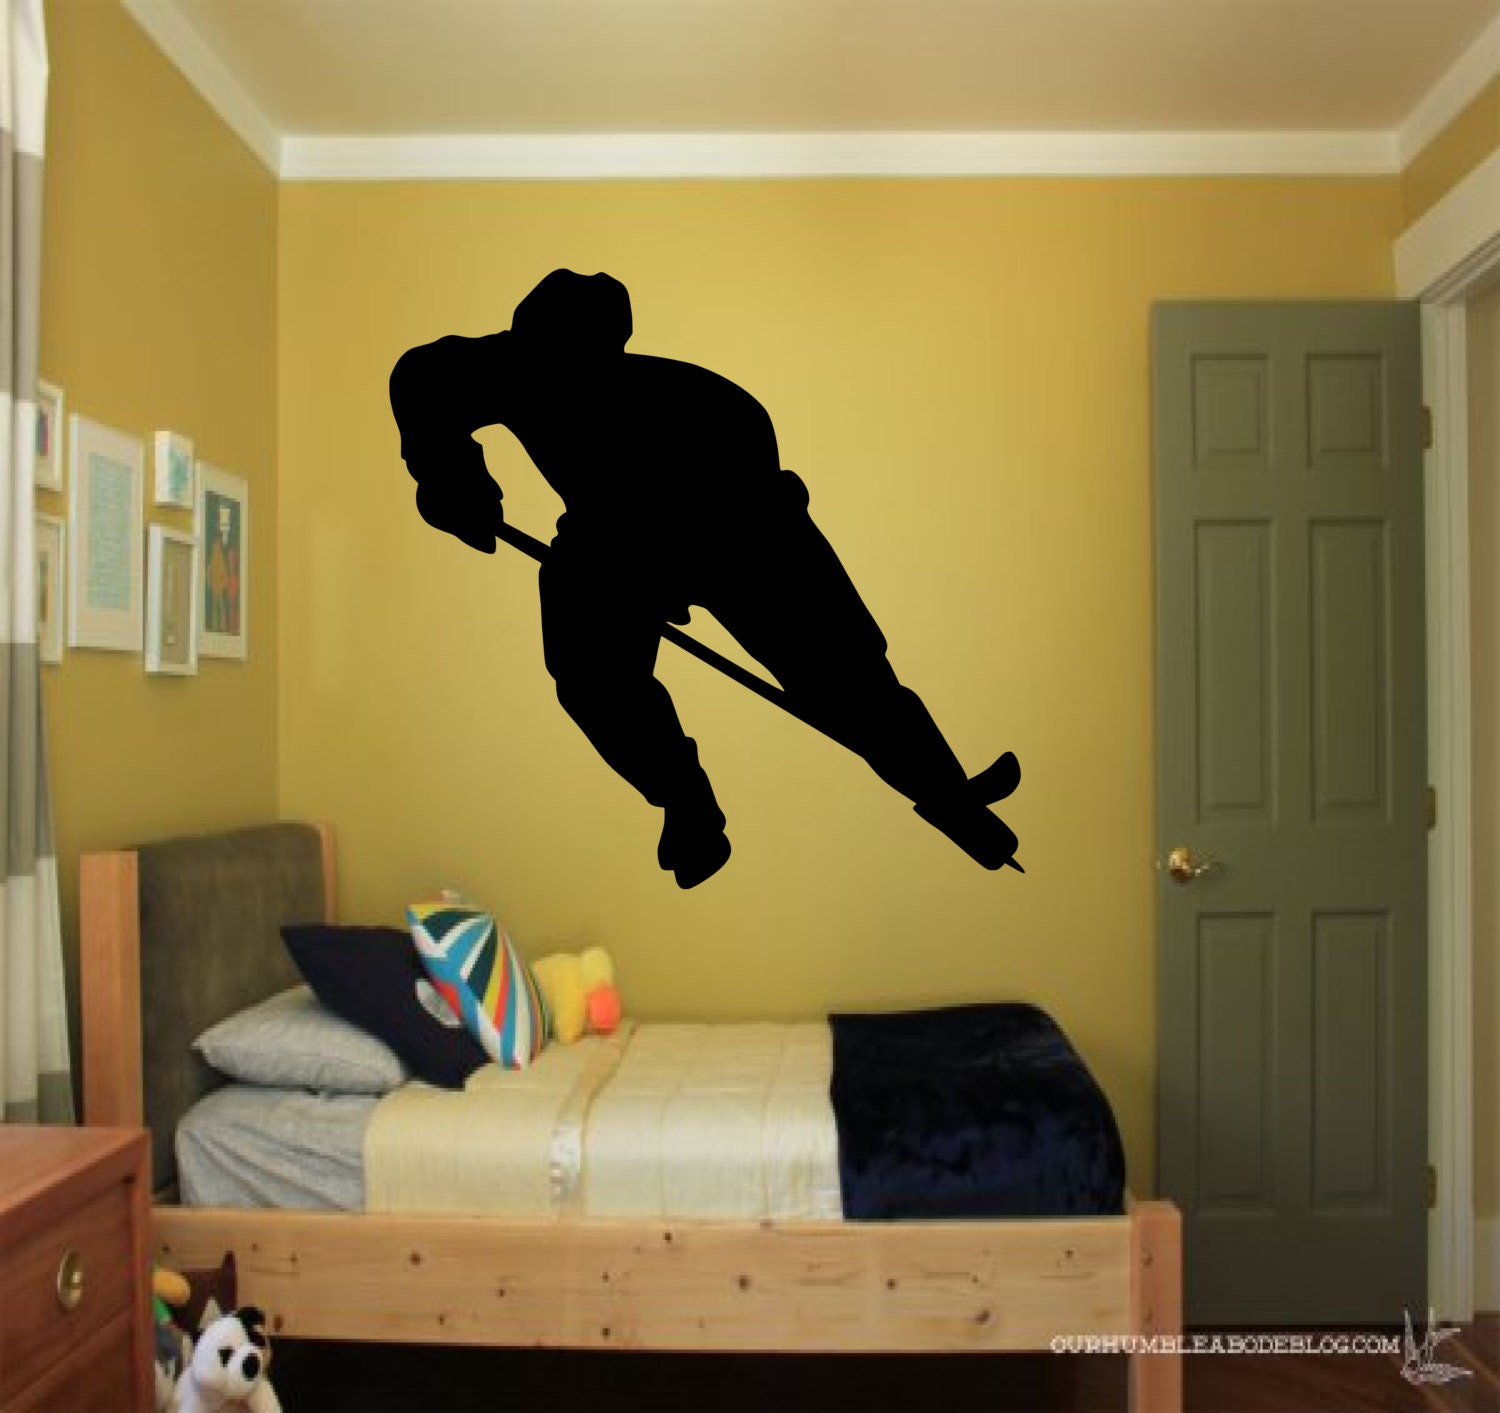 Hockey Player wall decal sports decals hockey wall decal